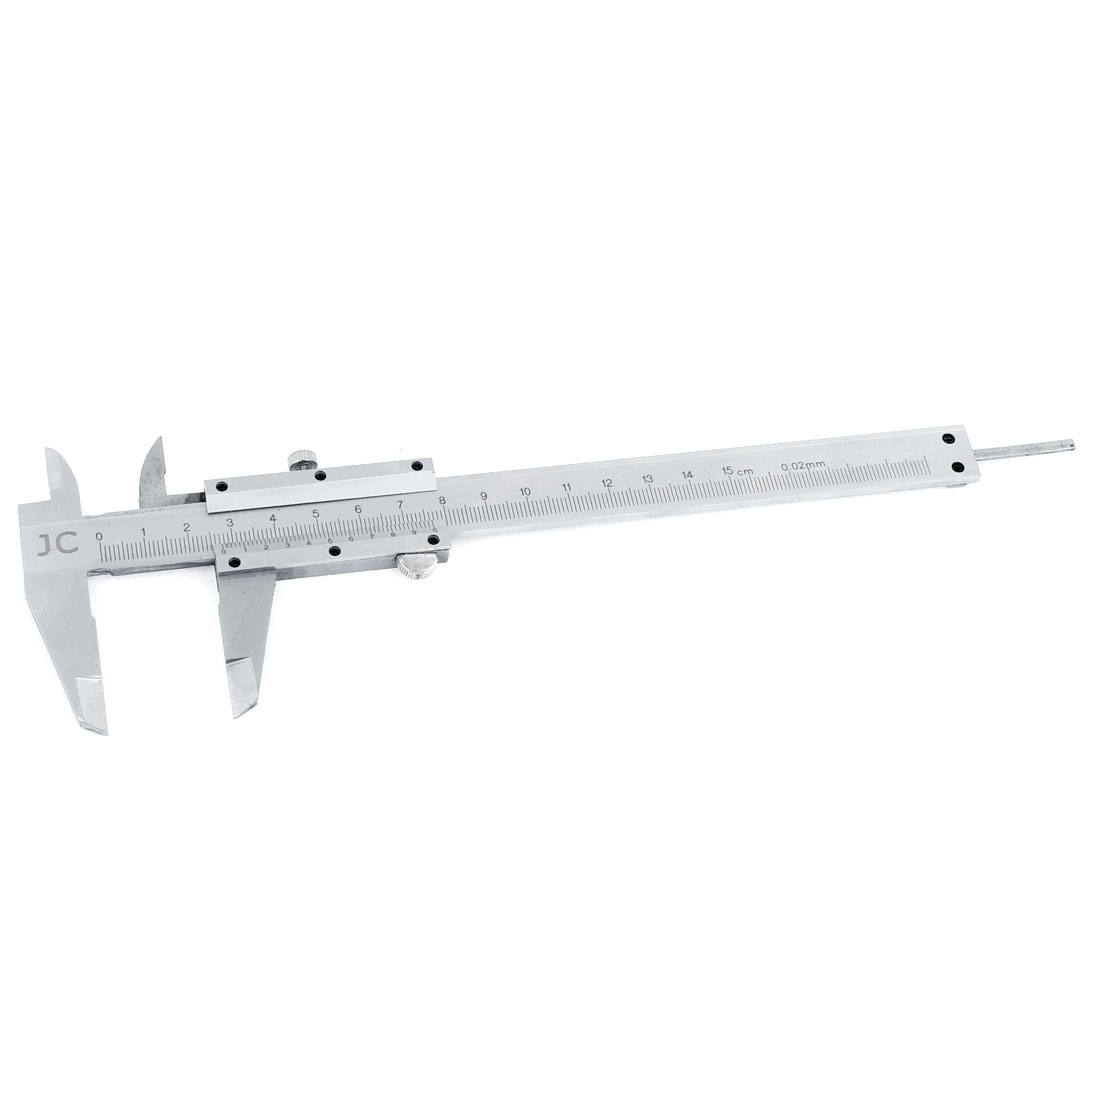 0.02mm Accuracy 0-150mm Vernier Caliper Measuring Tool